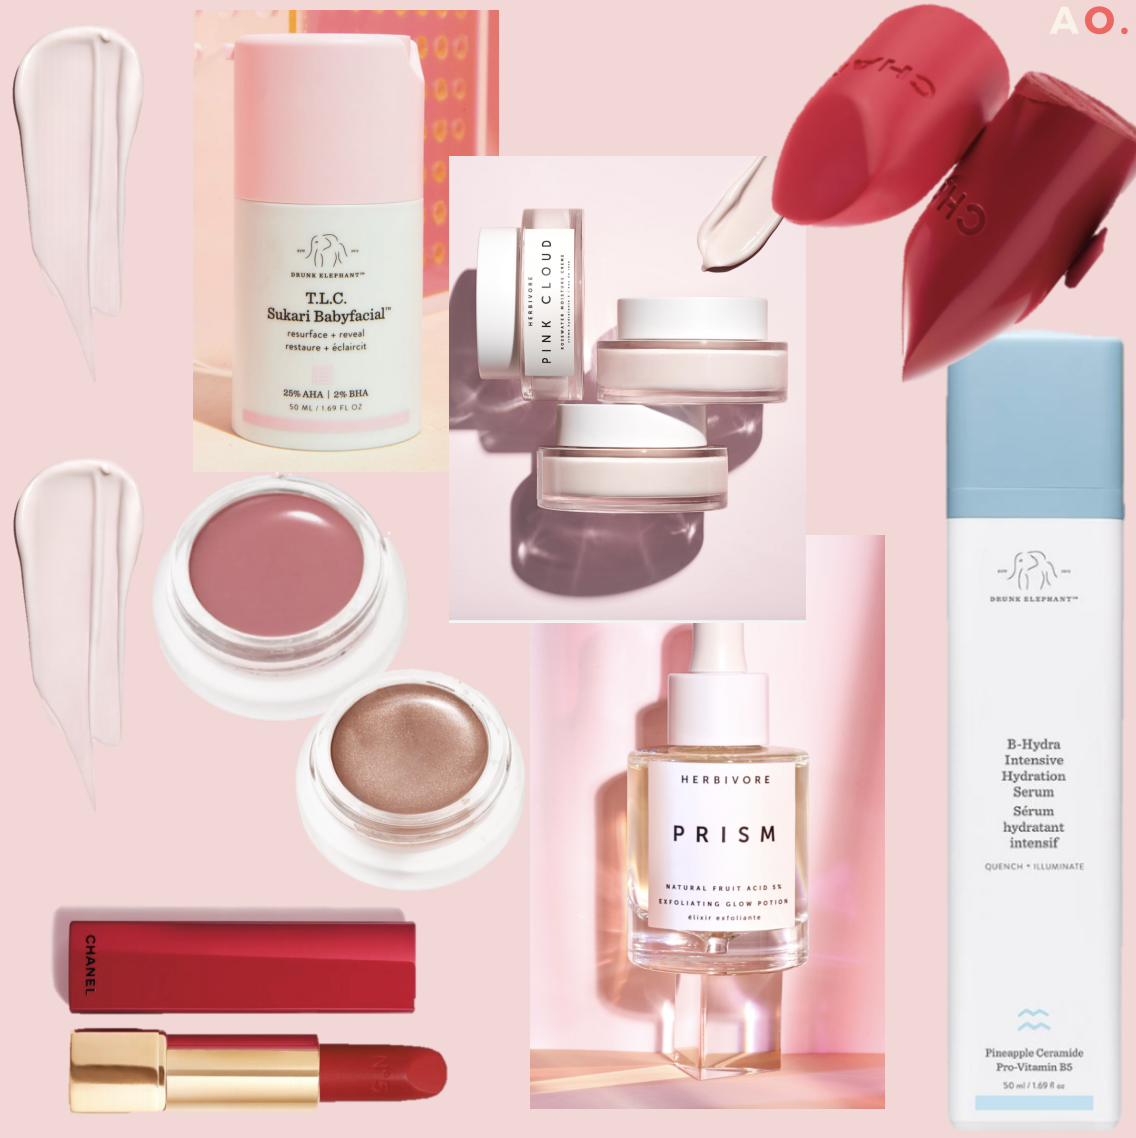 - A few new brands that have caused a storm in the beauty world and are taking over everyone's shelfie, the ultimate party red lipstick and some dreamy, beautifully buttery cream cheek products to keep makeup looking fresh and luminous this Winter. Here's what I'm currently lusting after in the beauty world…